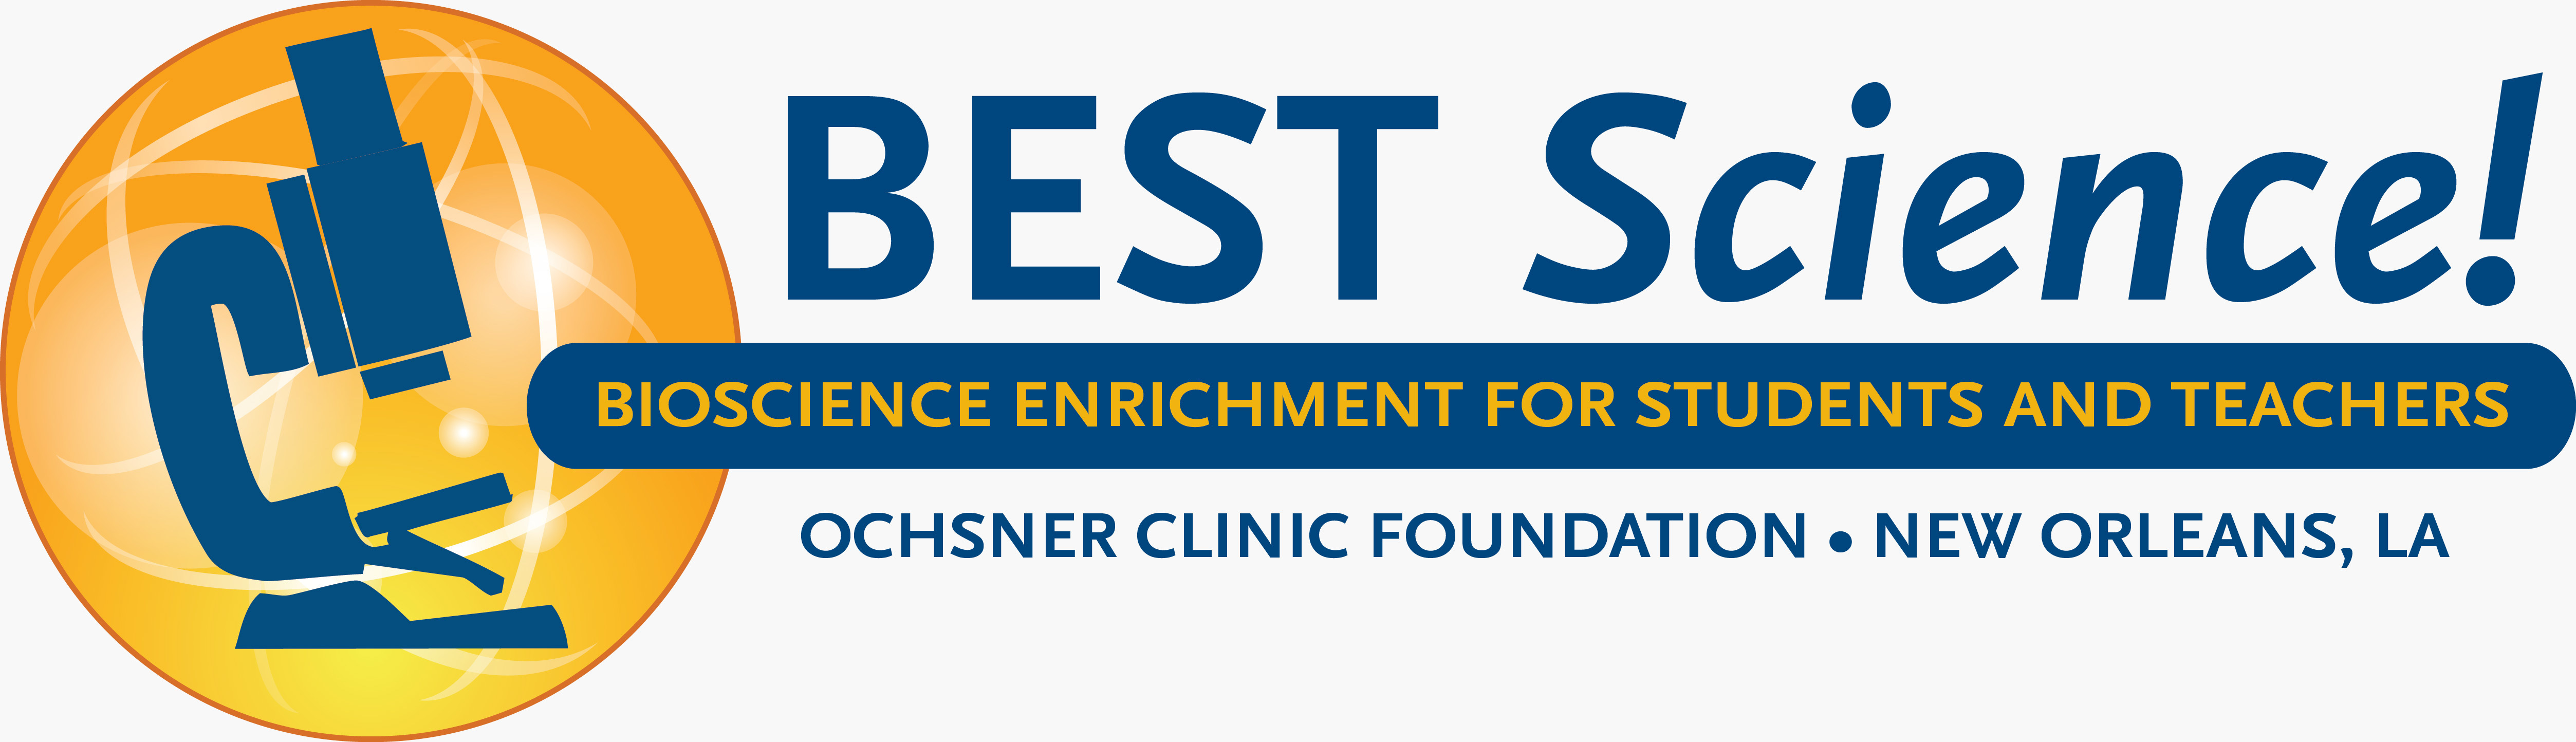 Ochsner Best Science Logo: Bioscience Enrichment for Students and Teachers.